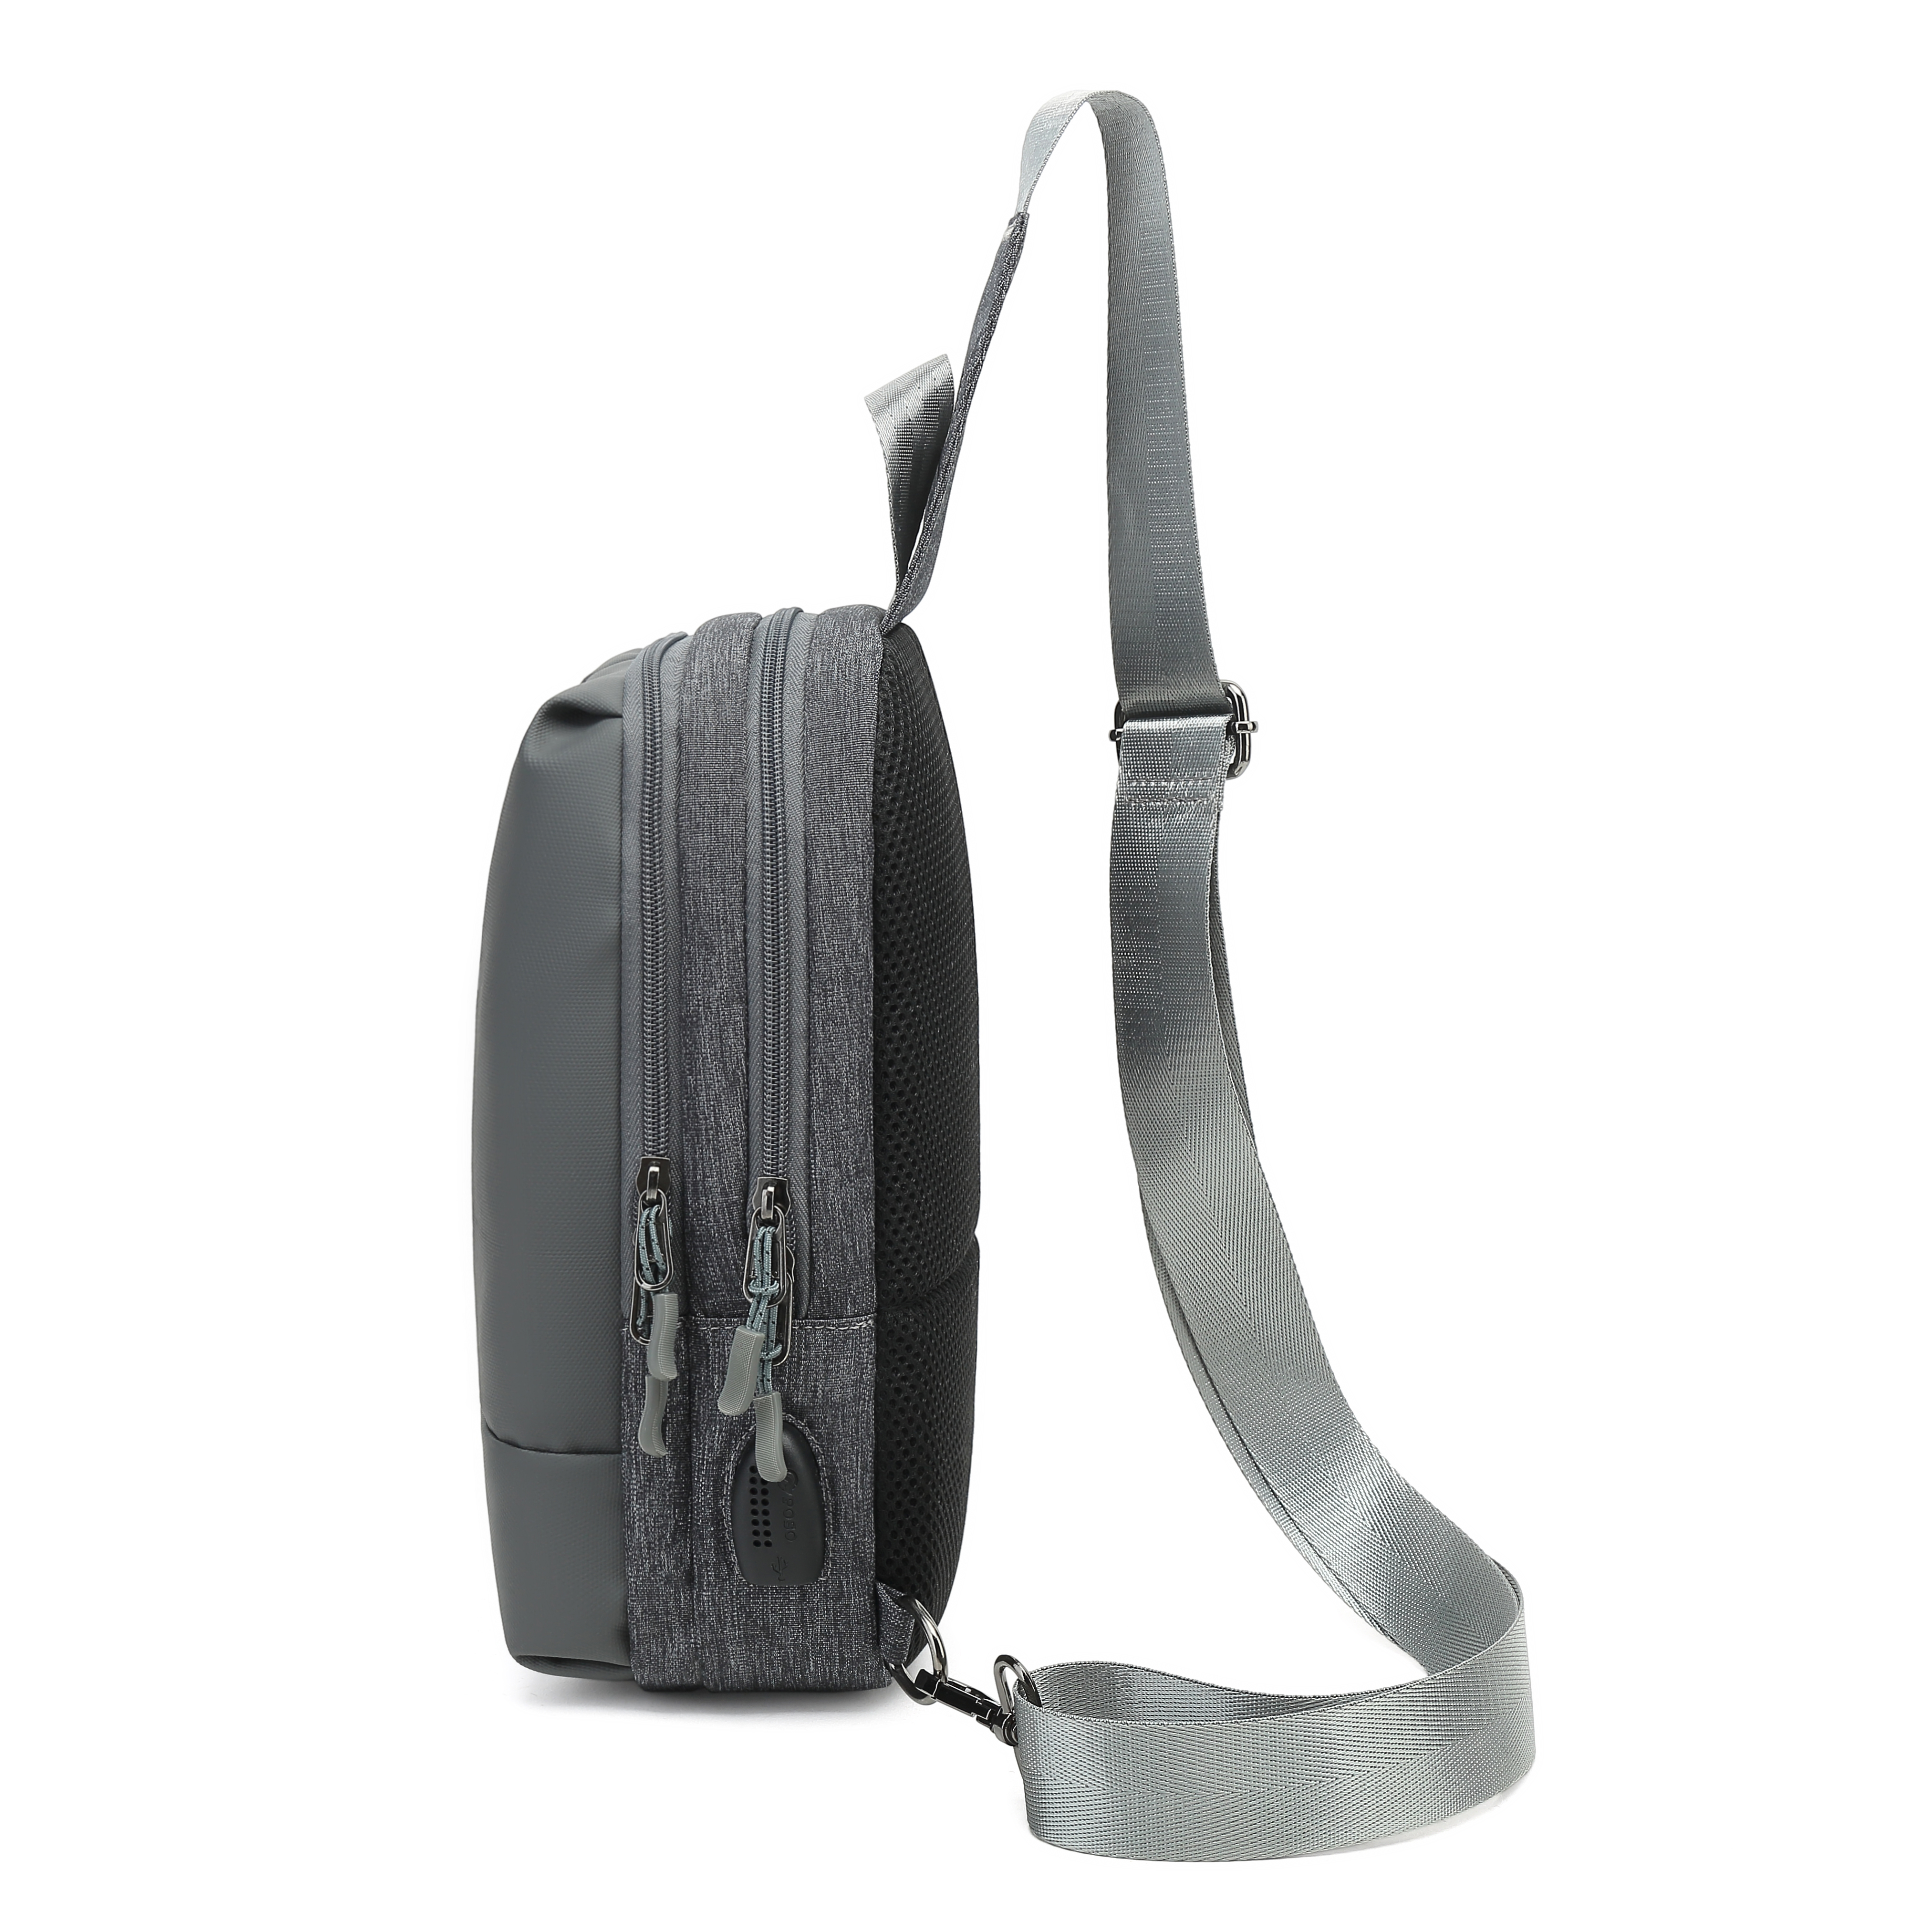 Gray Outdoor men's sling crossbody bag for Ipad